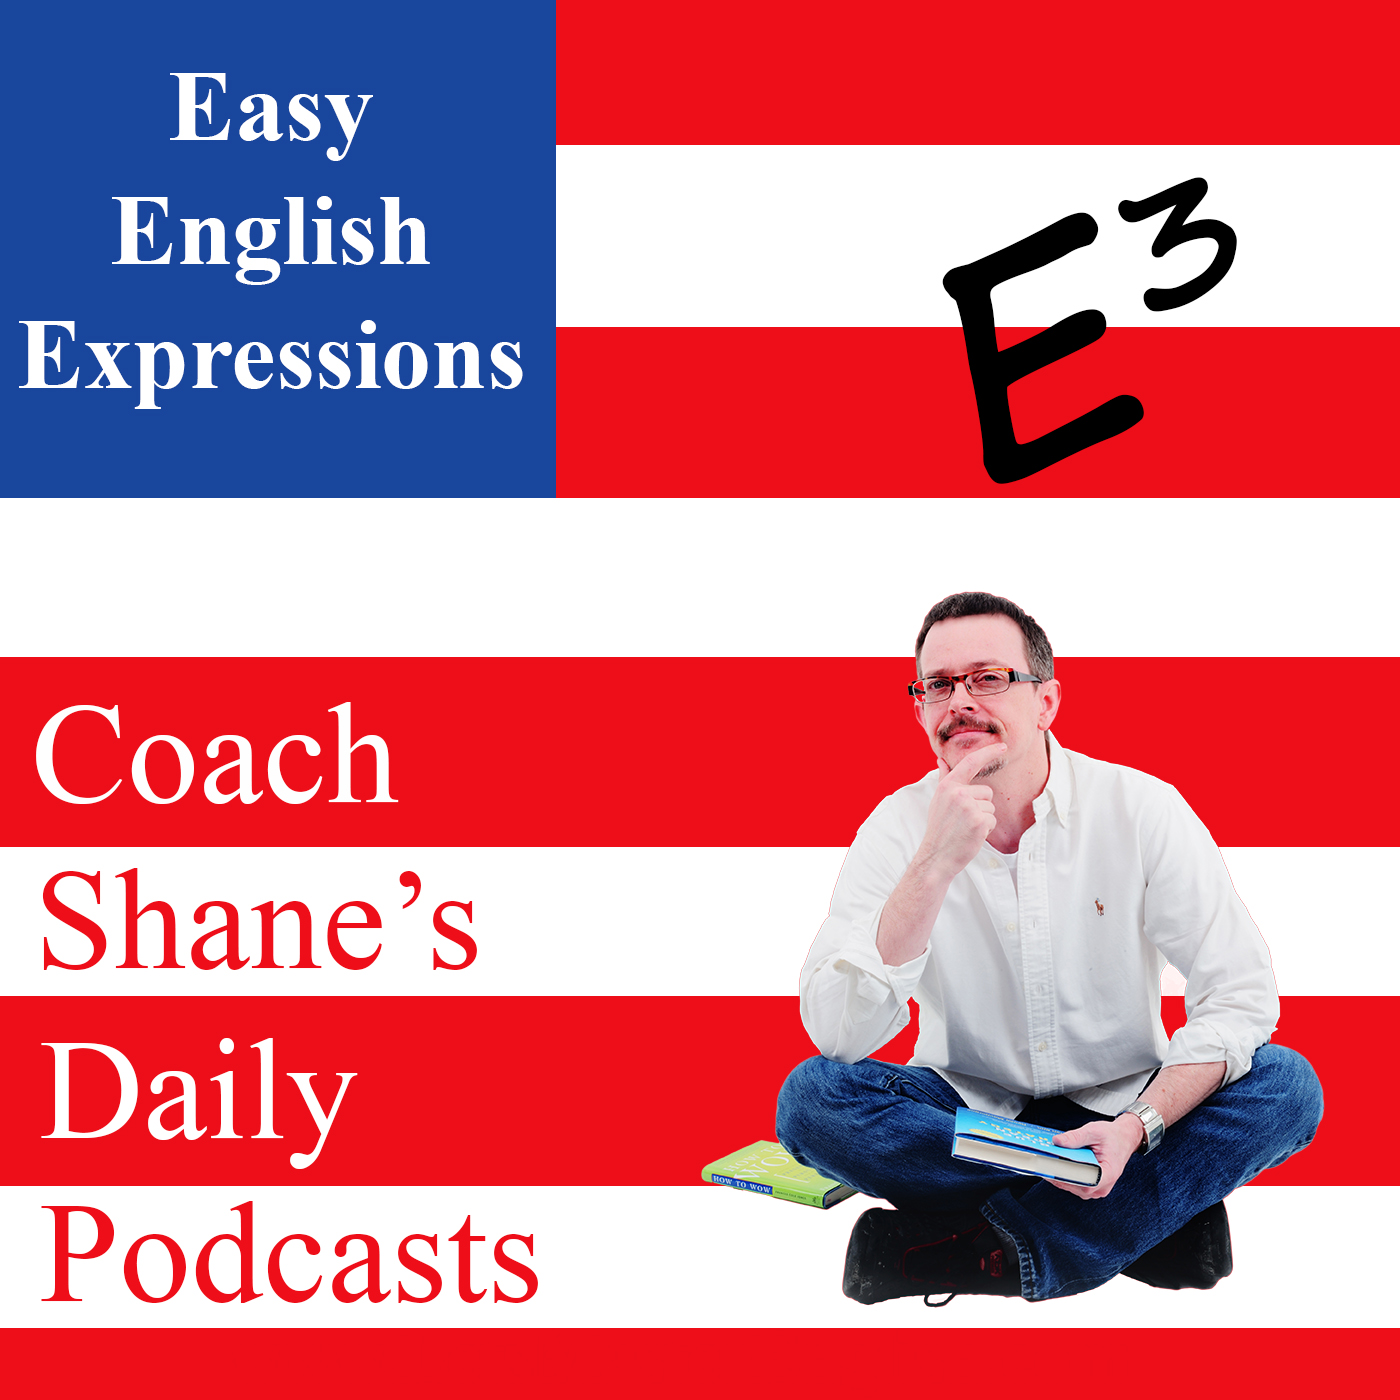 78 Daily Easy English Expression PODCAST—to GOOF OFF